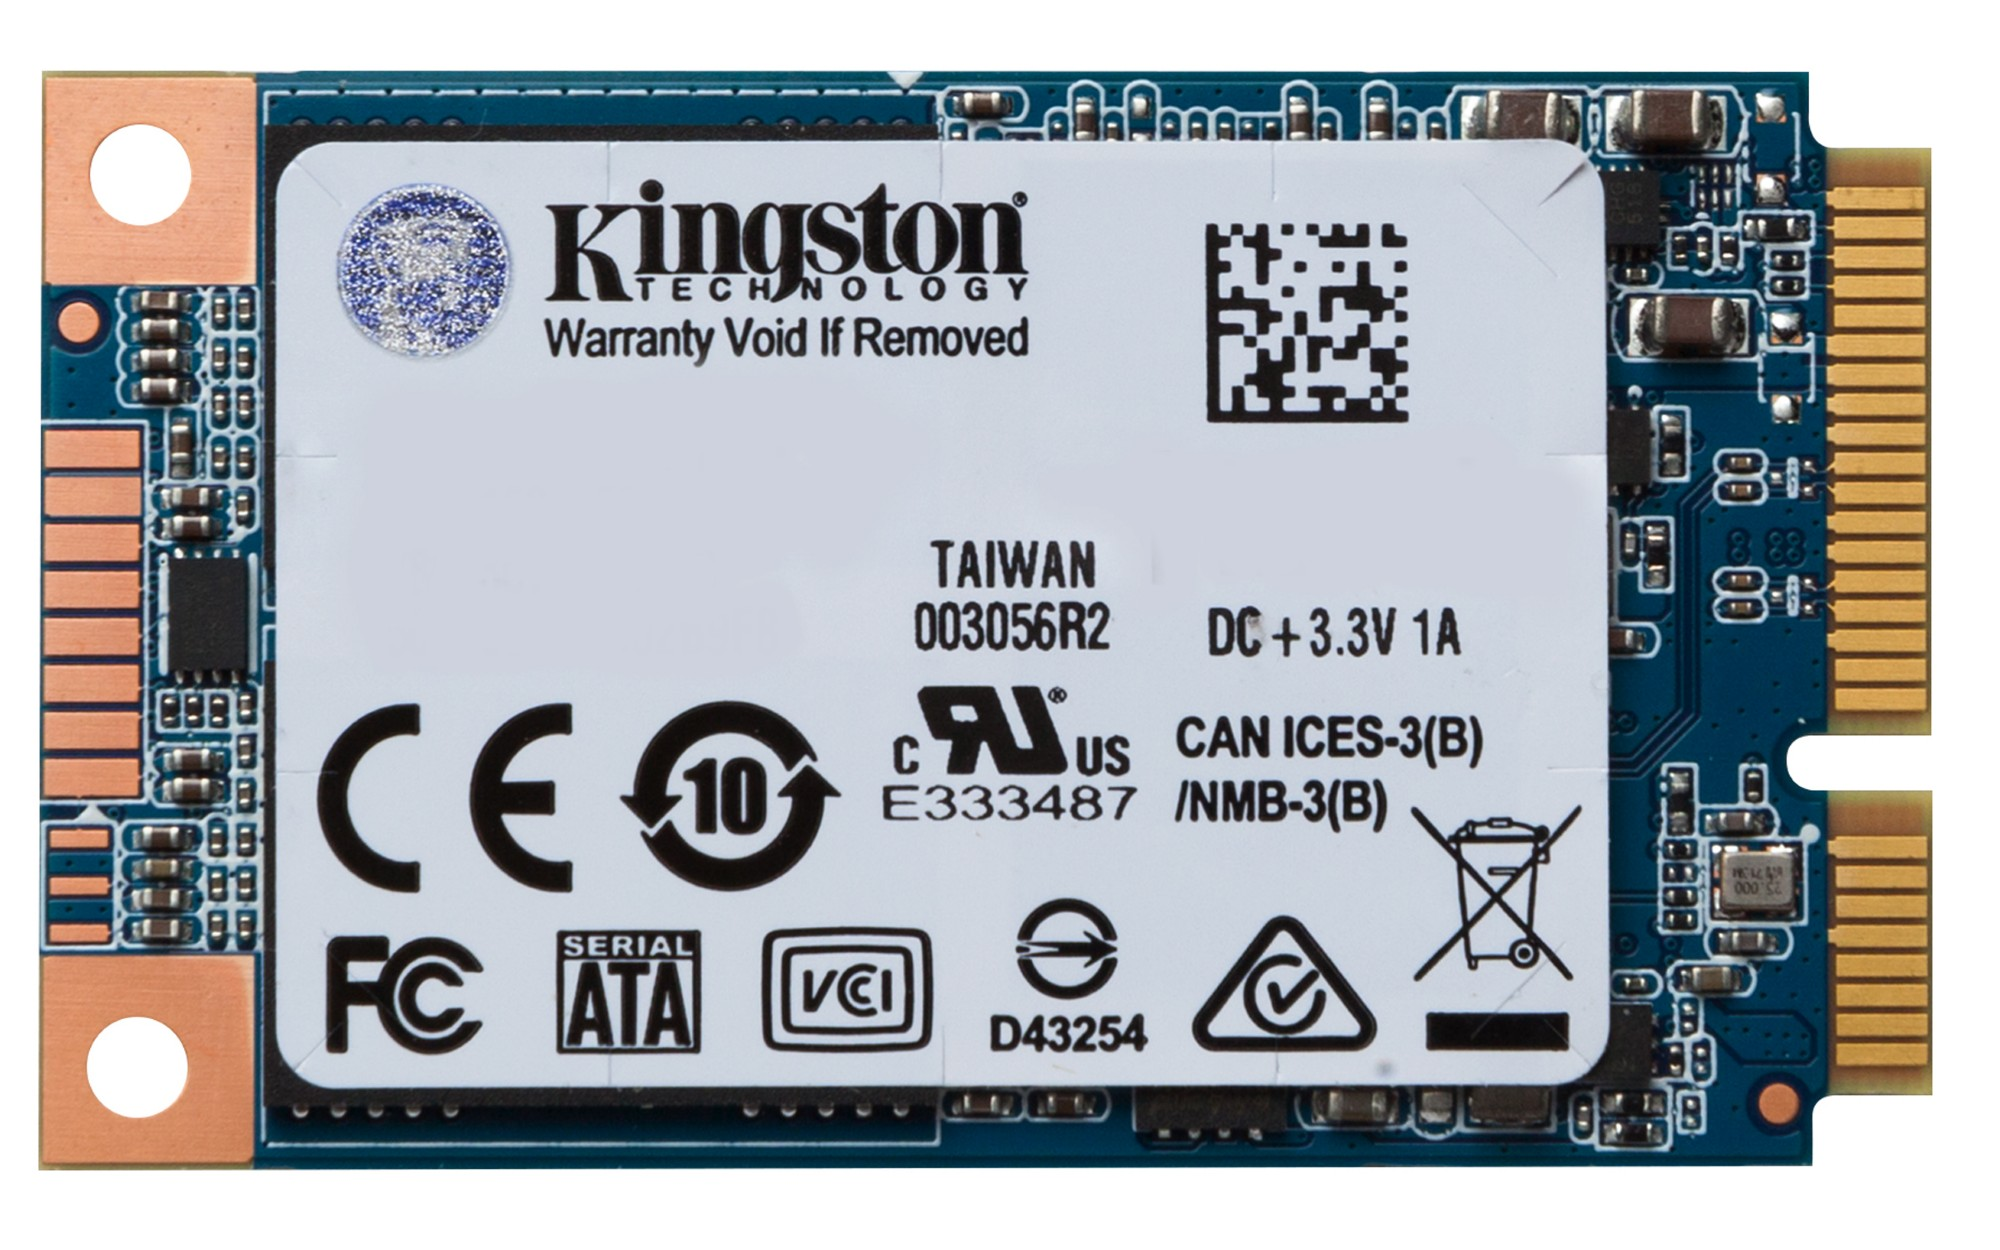 KINGSTON UV500 SSD 120GB MSATA SERIAL ATA III